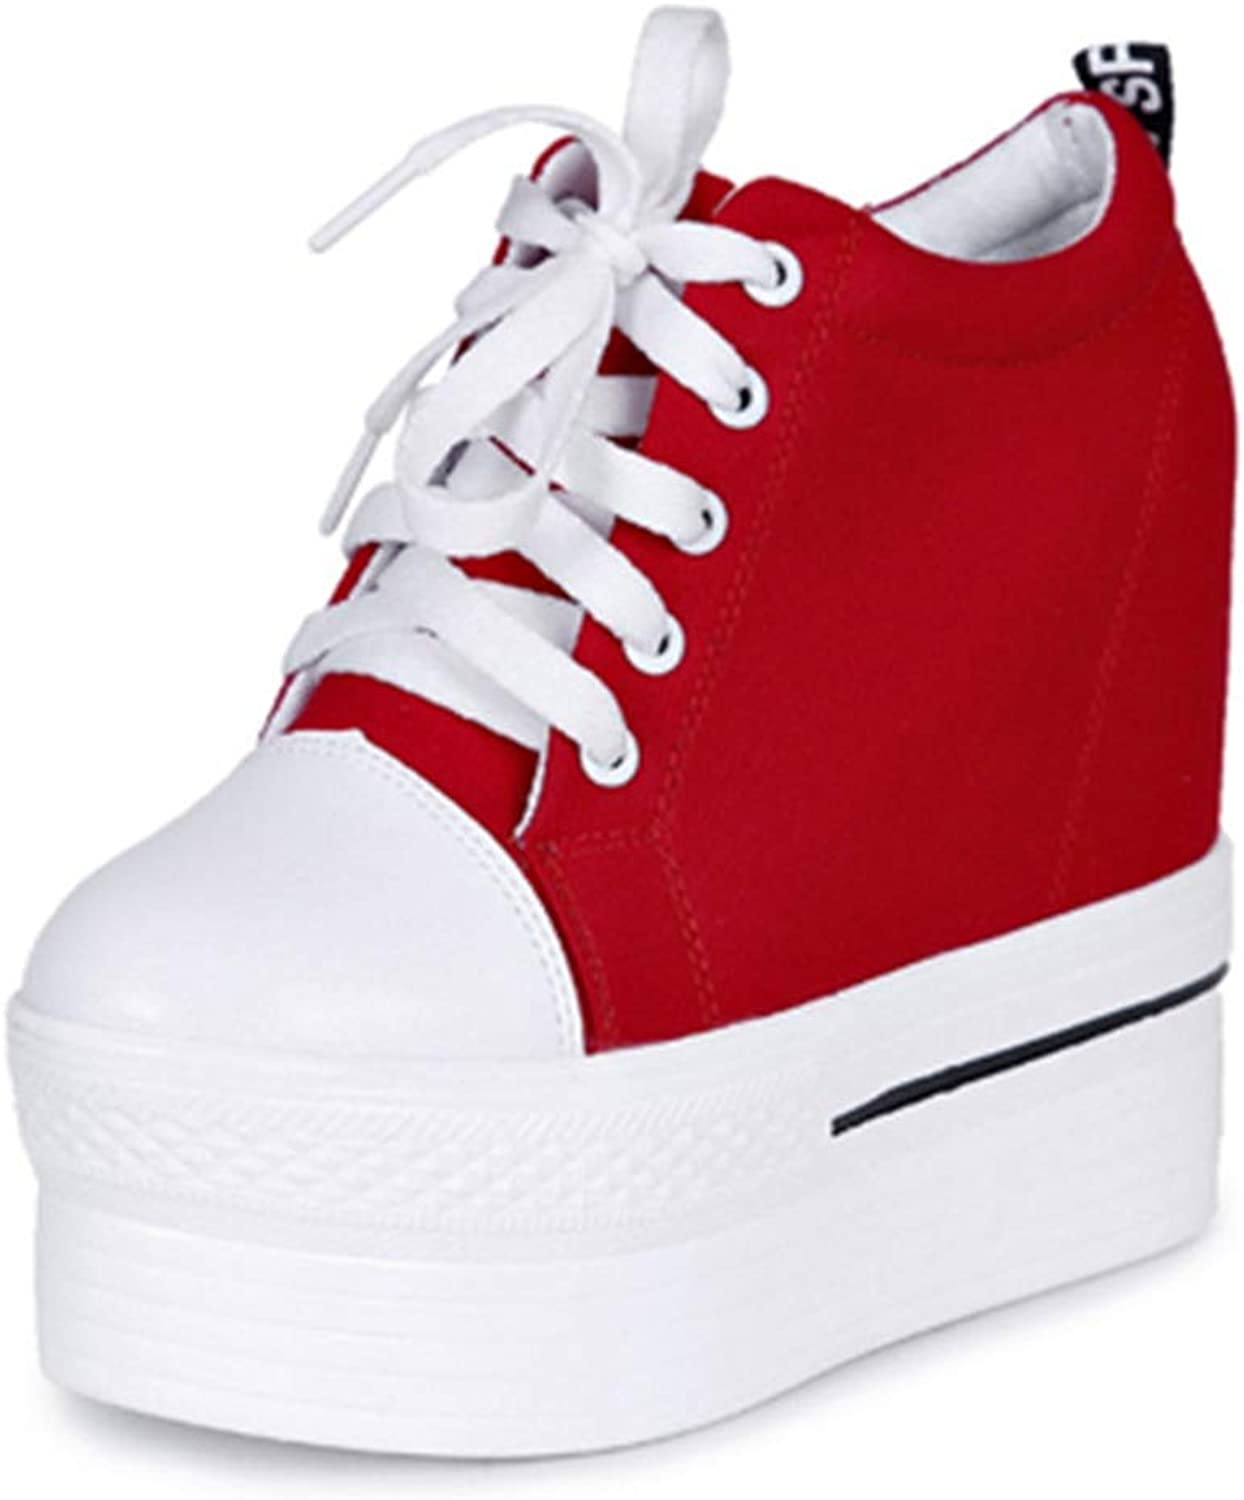 Canvas shoes Women Casual Elevator Platform shoes Female High Top Hidden Wedge Heels Ankle Boots